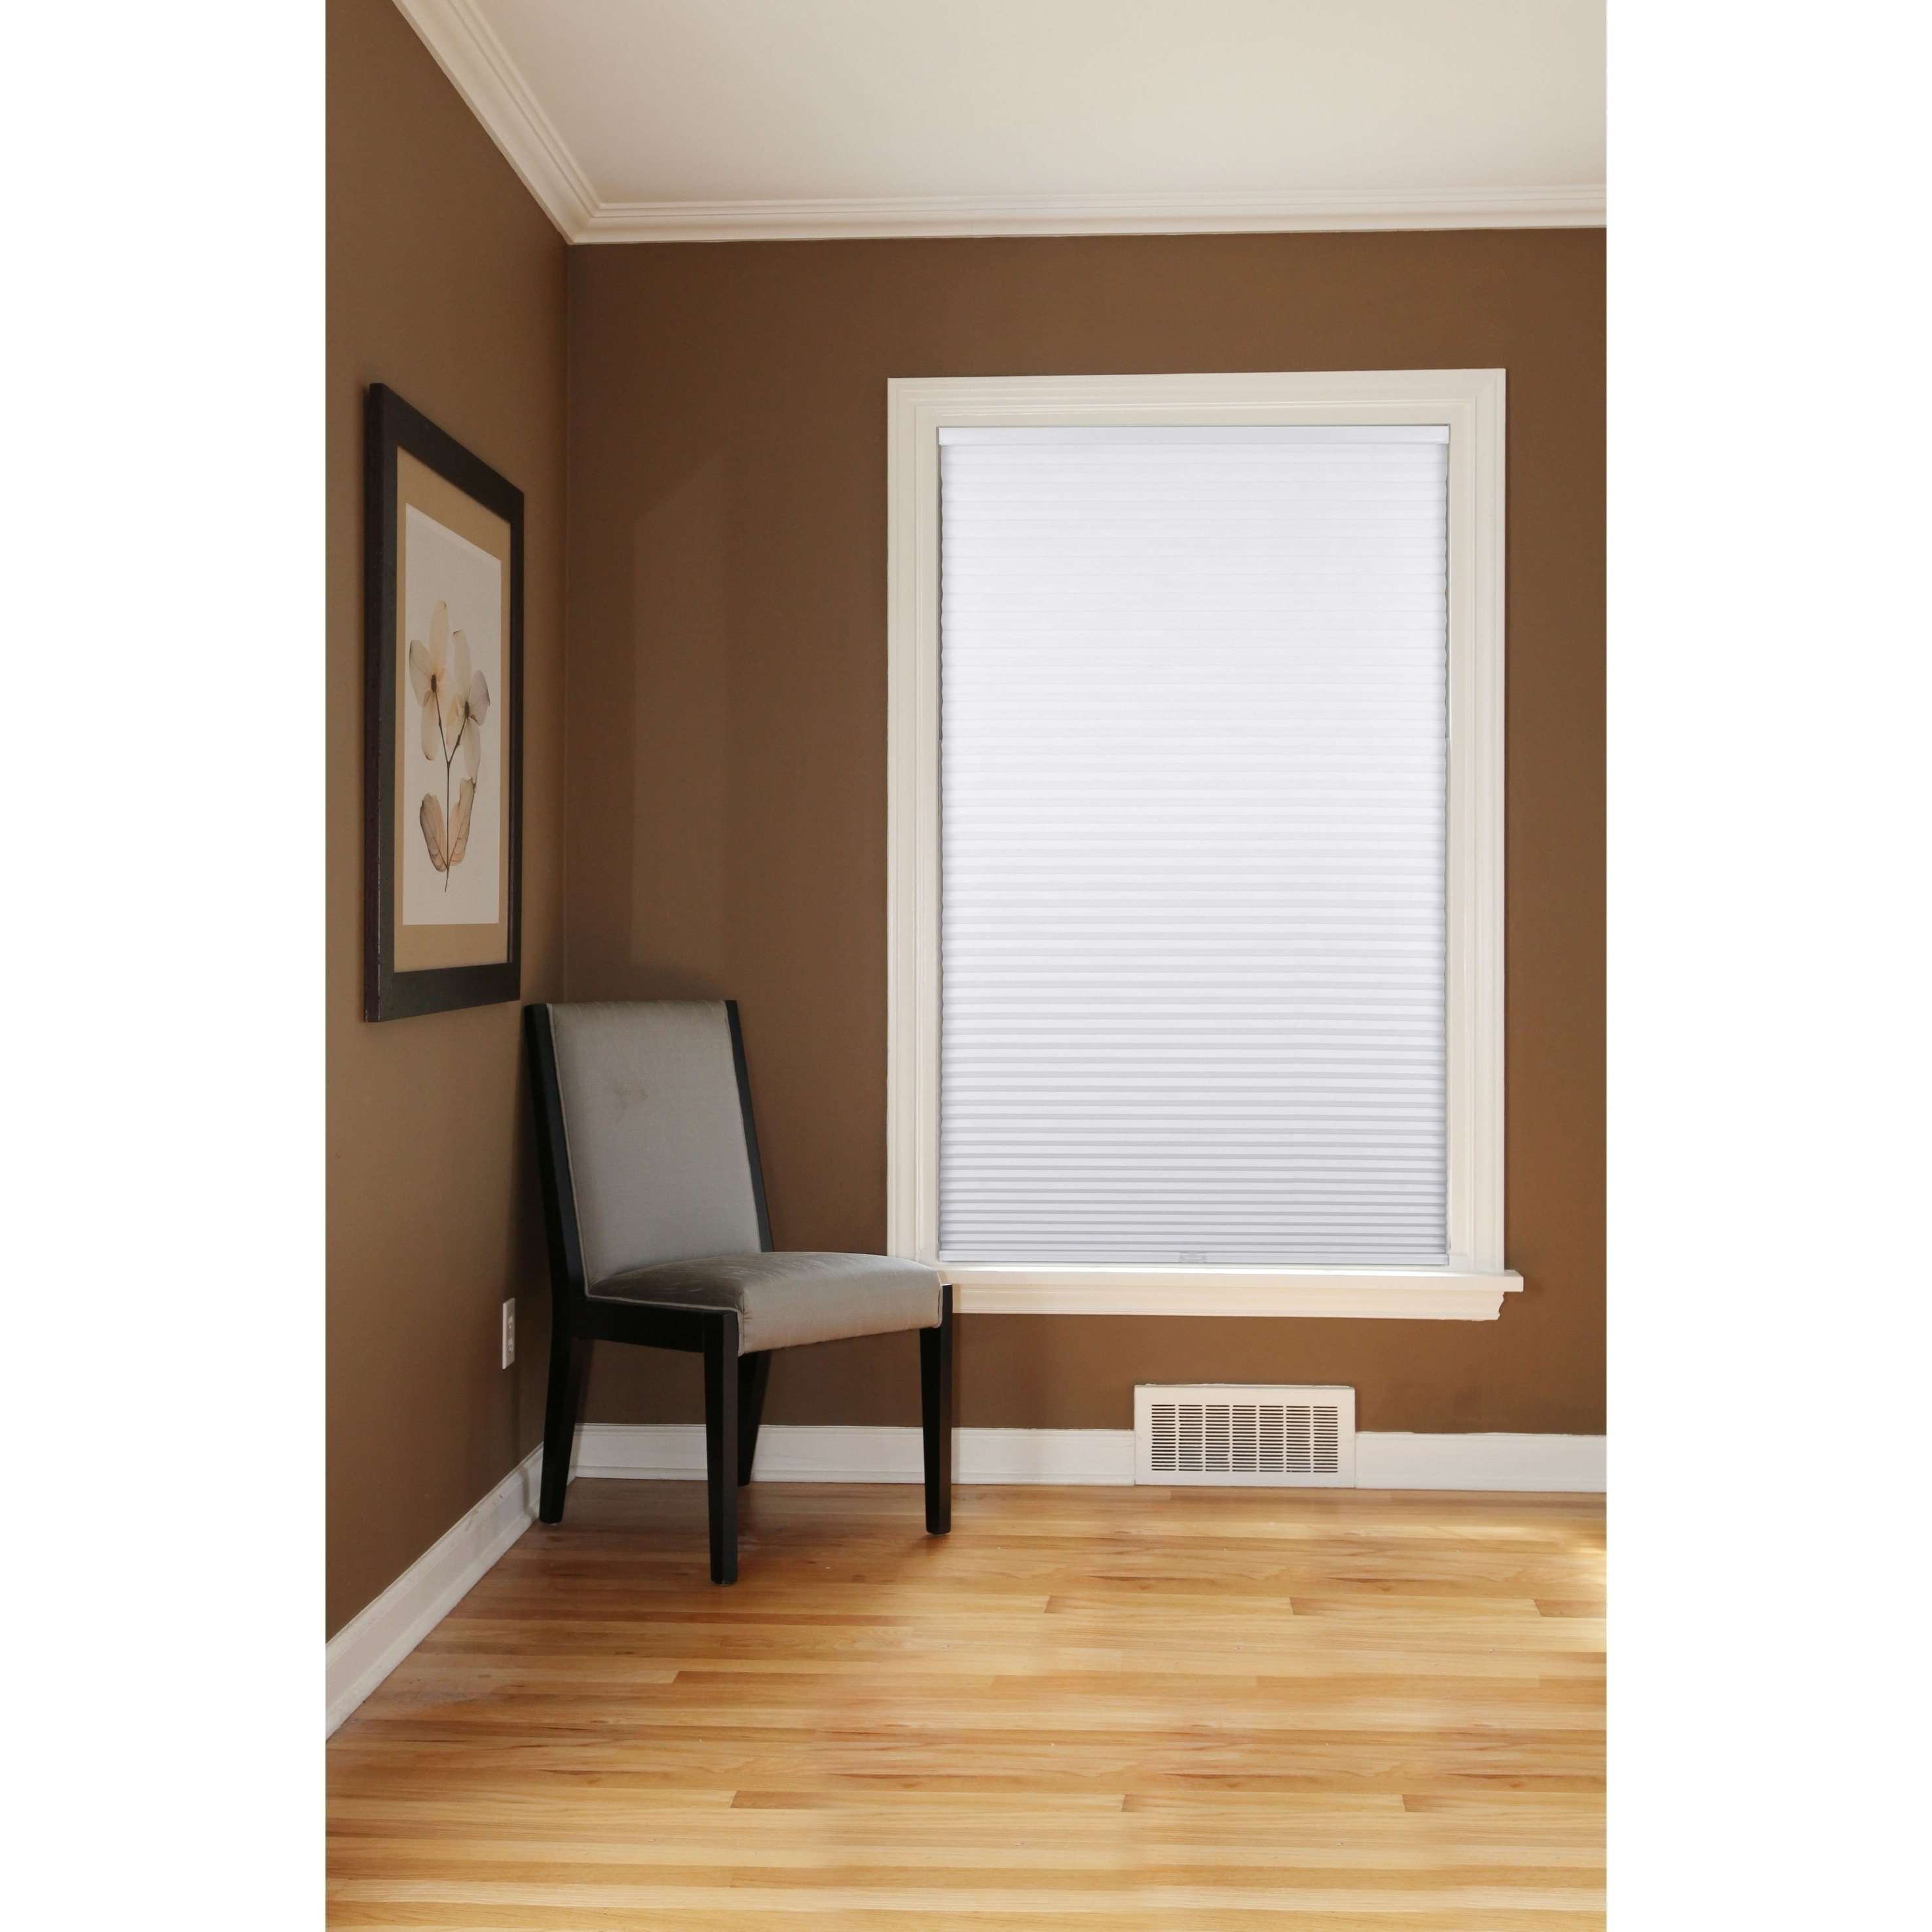 buy 72 inches online at overstockcom our best window treatments deals - Blackout Cellular Shades